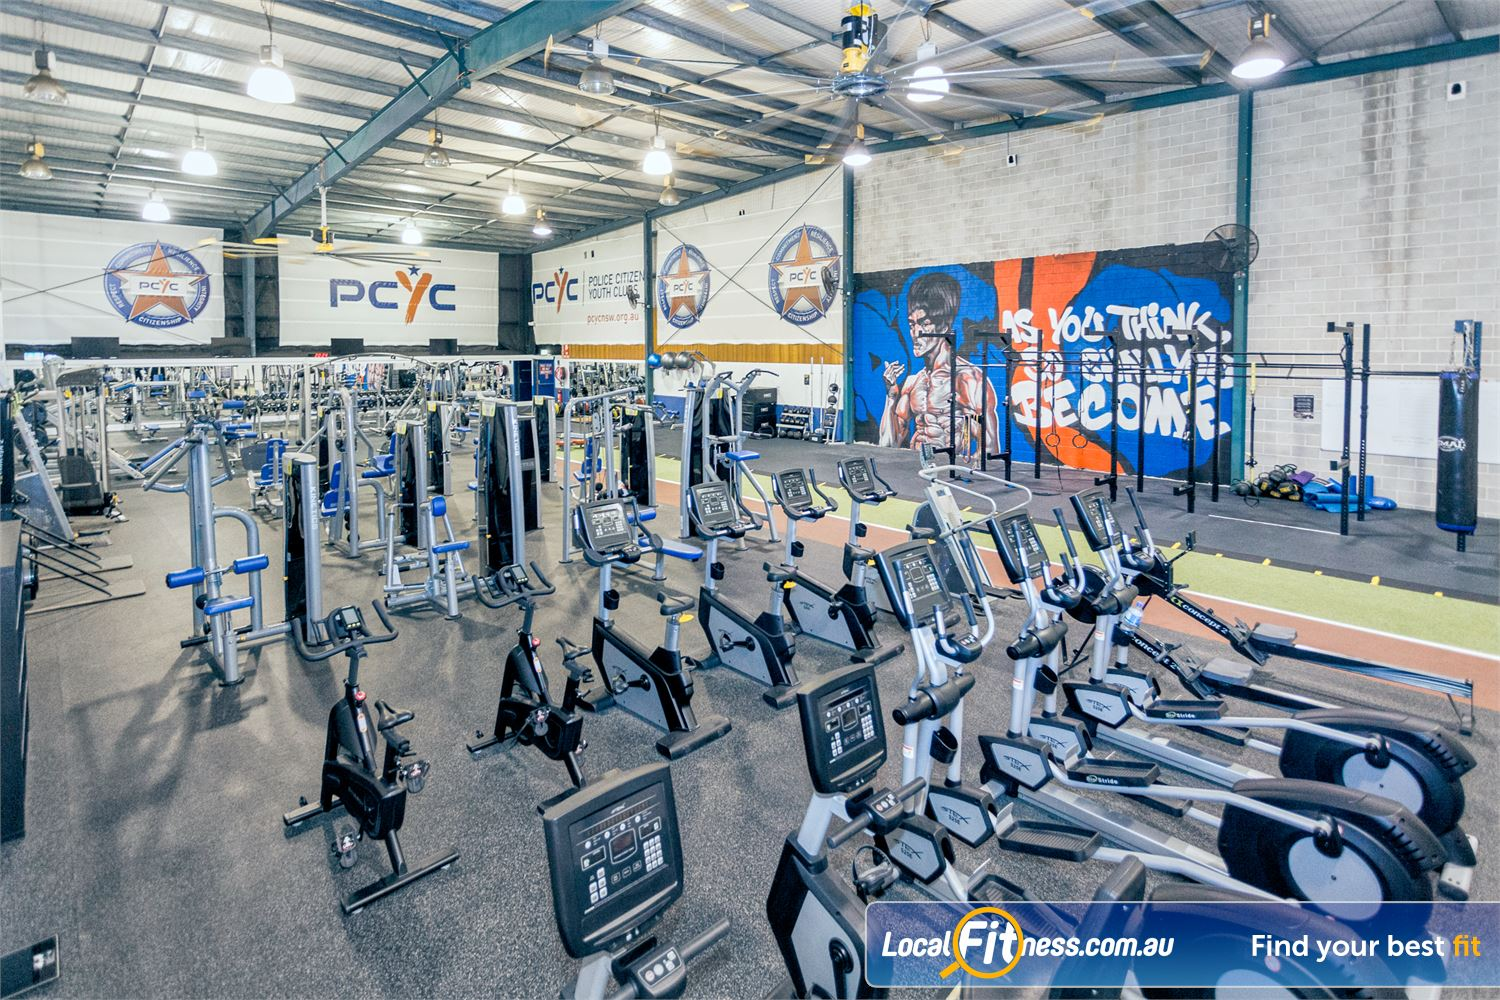 PCYC Auburn Lidcombe The spacious PCYC Auburn gym is fully equipped with over 60 machines.